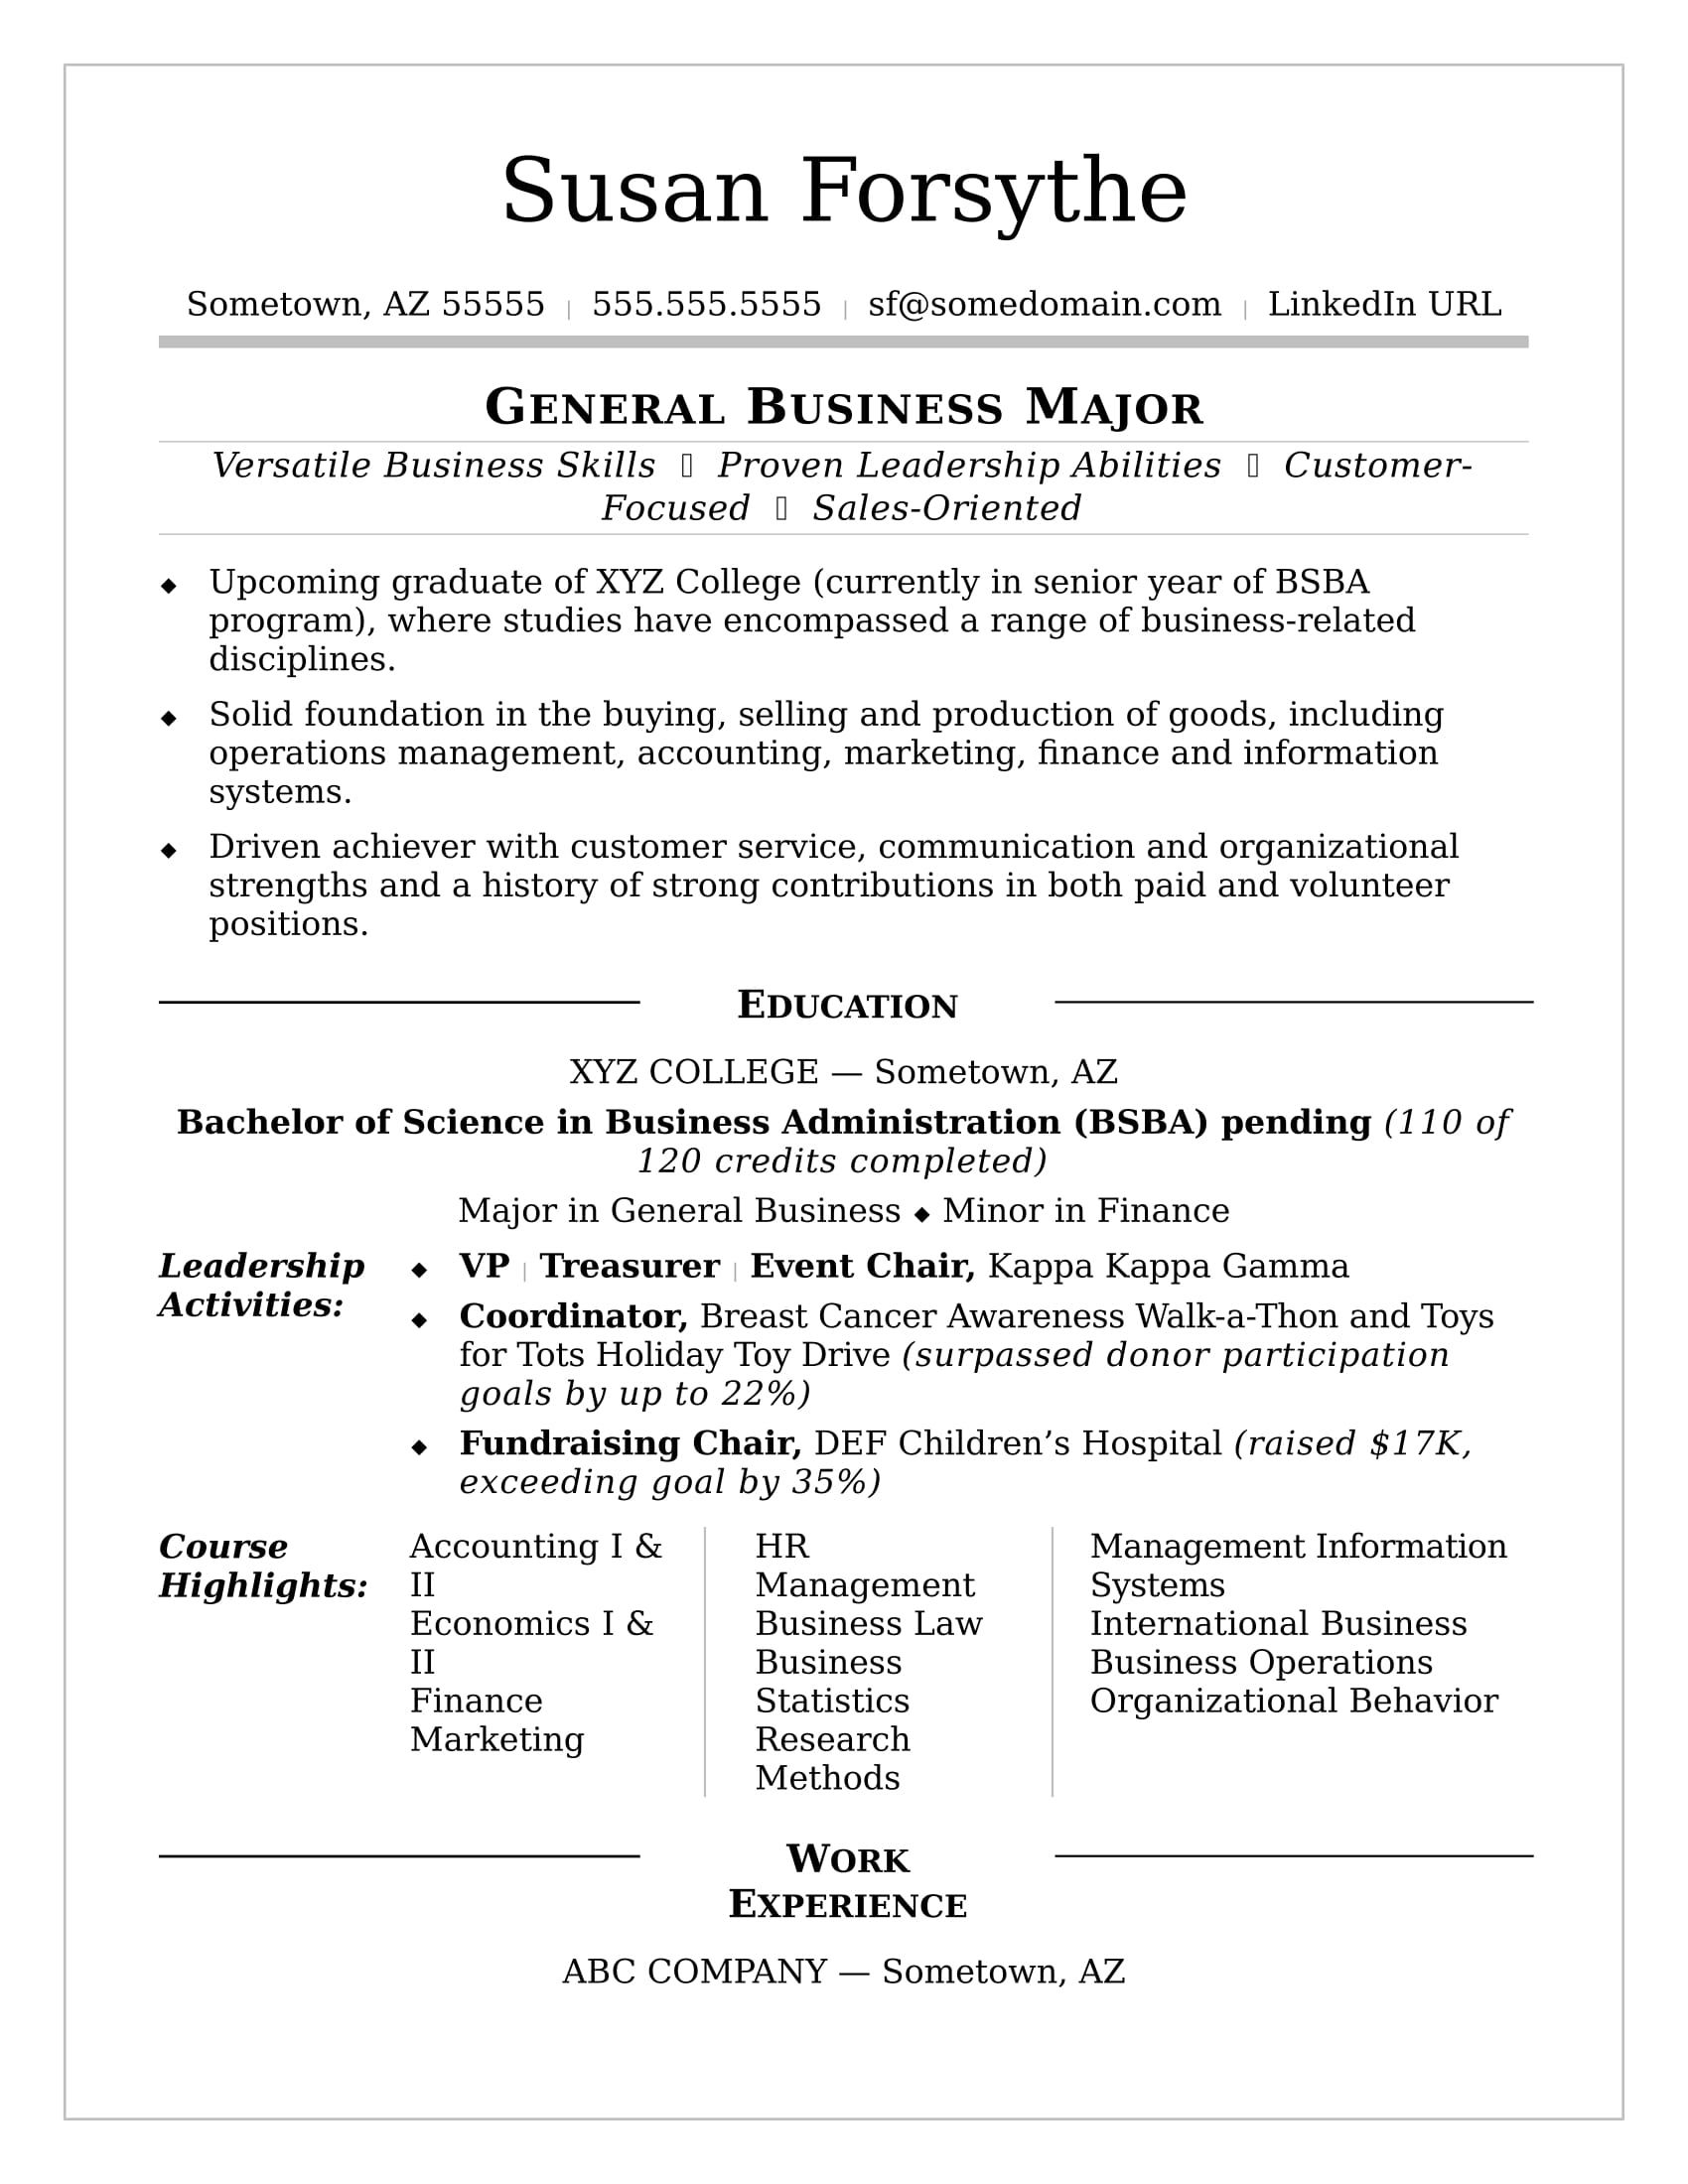 image result for college student resume template graduate example and writing tips Resume College Graduate Resume Example And Writing Tips